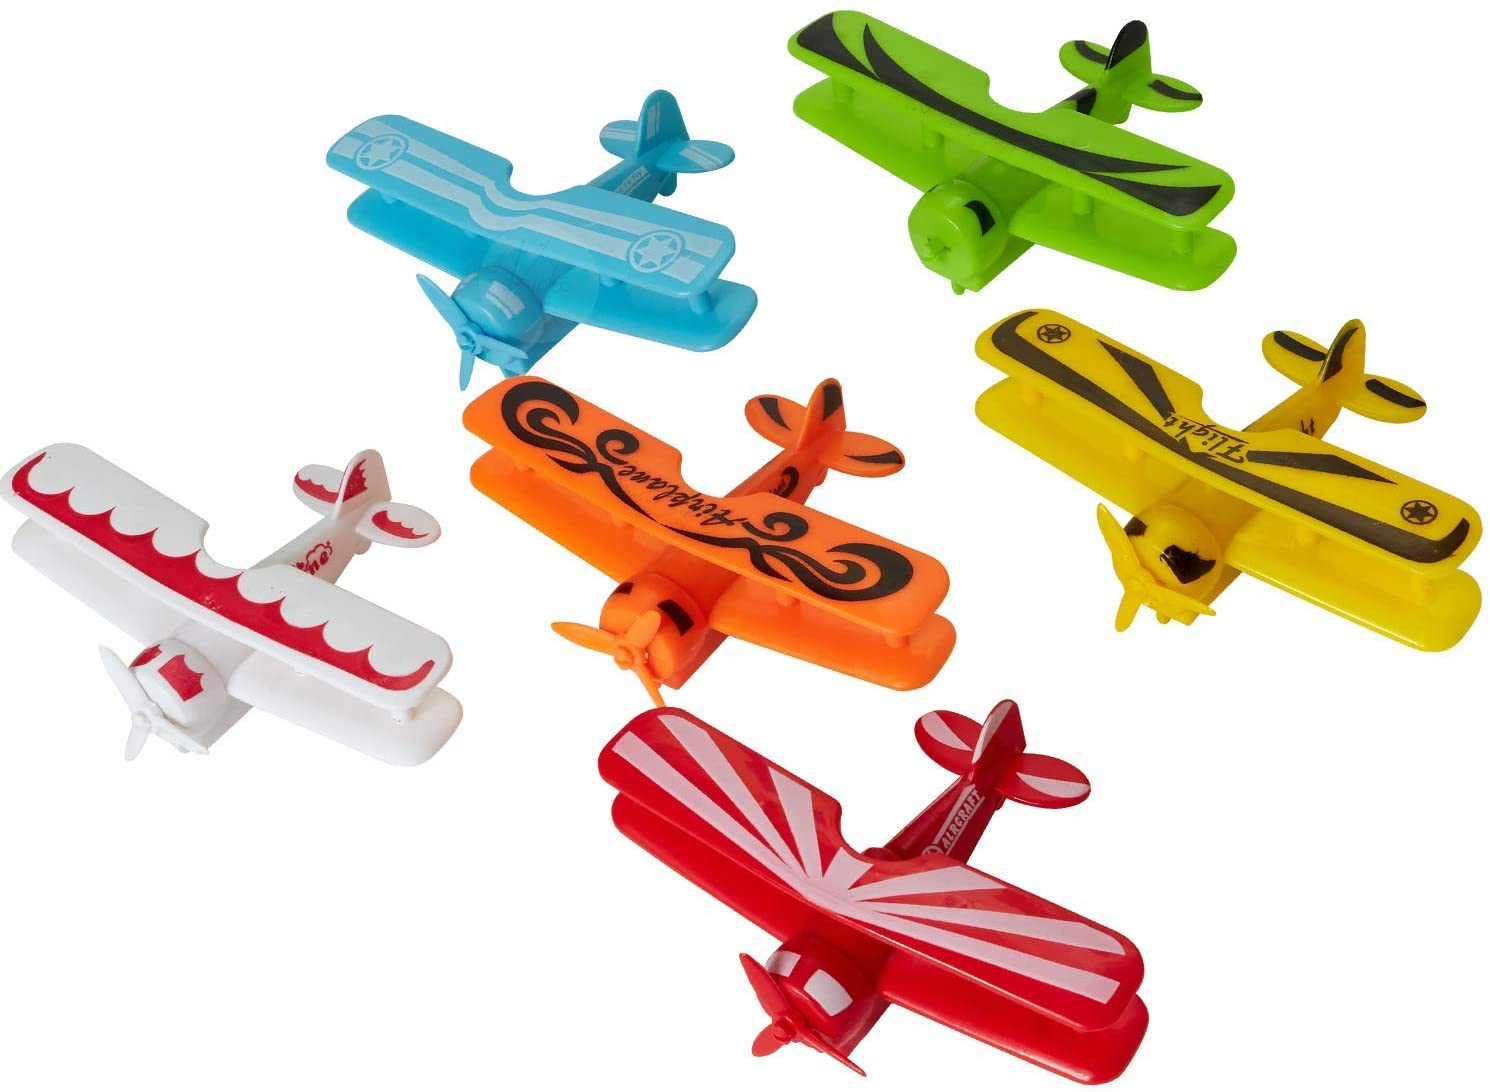 Kicko Pull Back Airplane Toys - Plastic Friction Plane - for Gifts, Party Favors, School Supplies - Assorted Colors, 4.5 Inch, 6 Pack